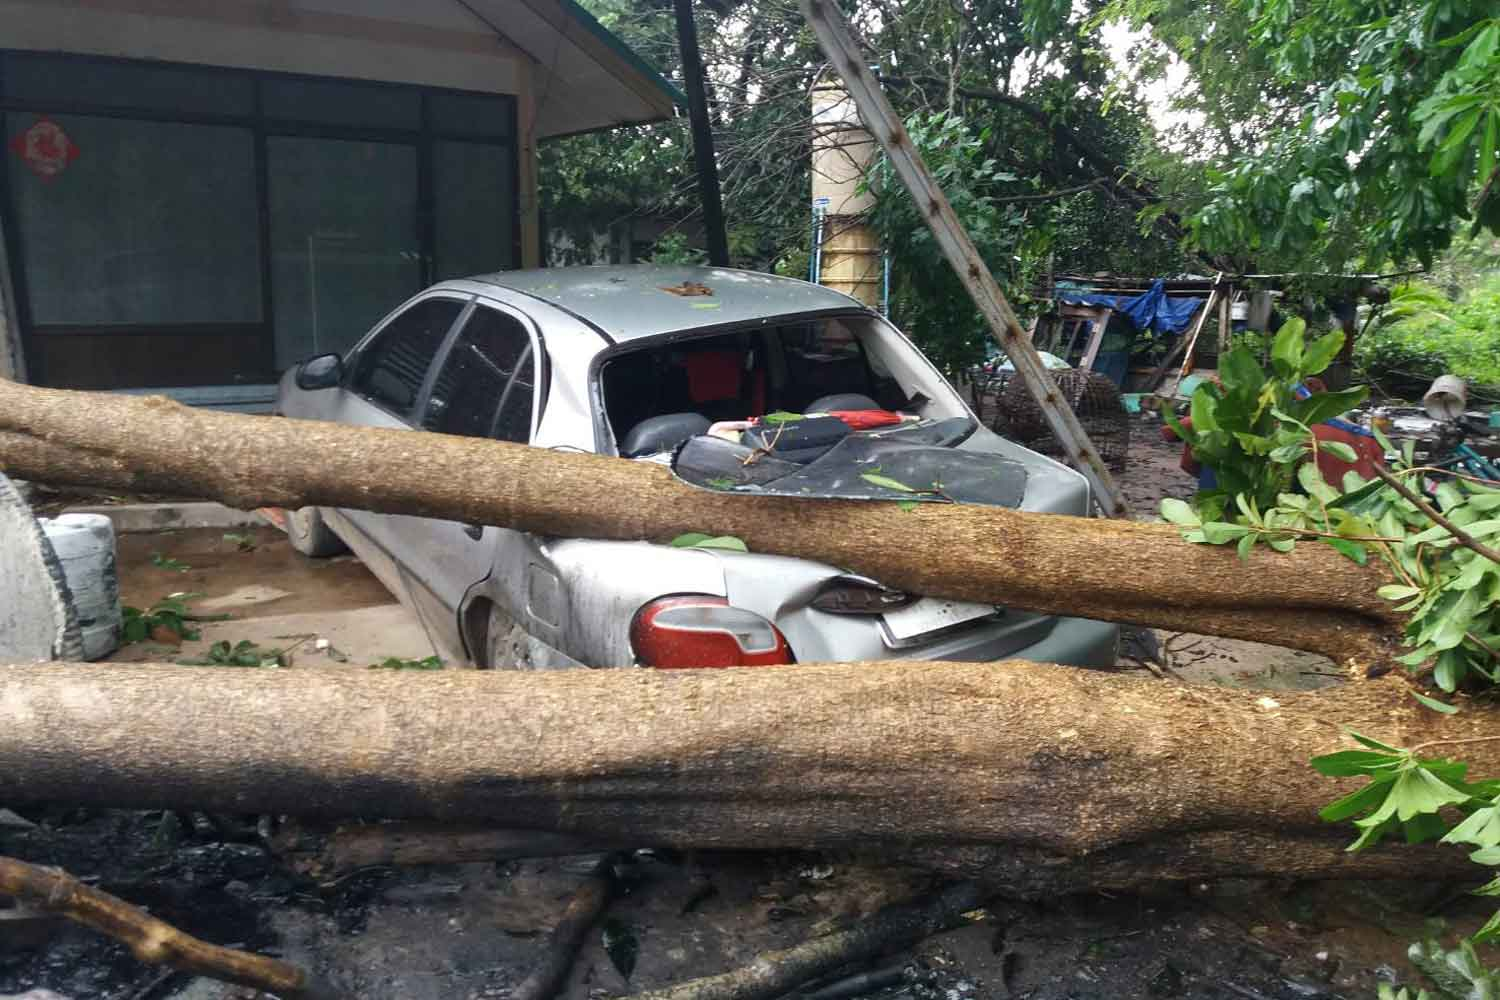 A car at a village in tambon Nong Rawiang of Muang district, Nakhon Ratchasima, is  damaged by fallen trees during a storm on Sunday. PRASIT TANGPRASERT